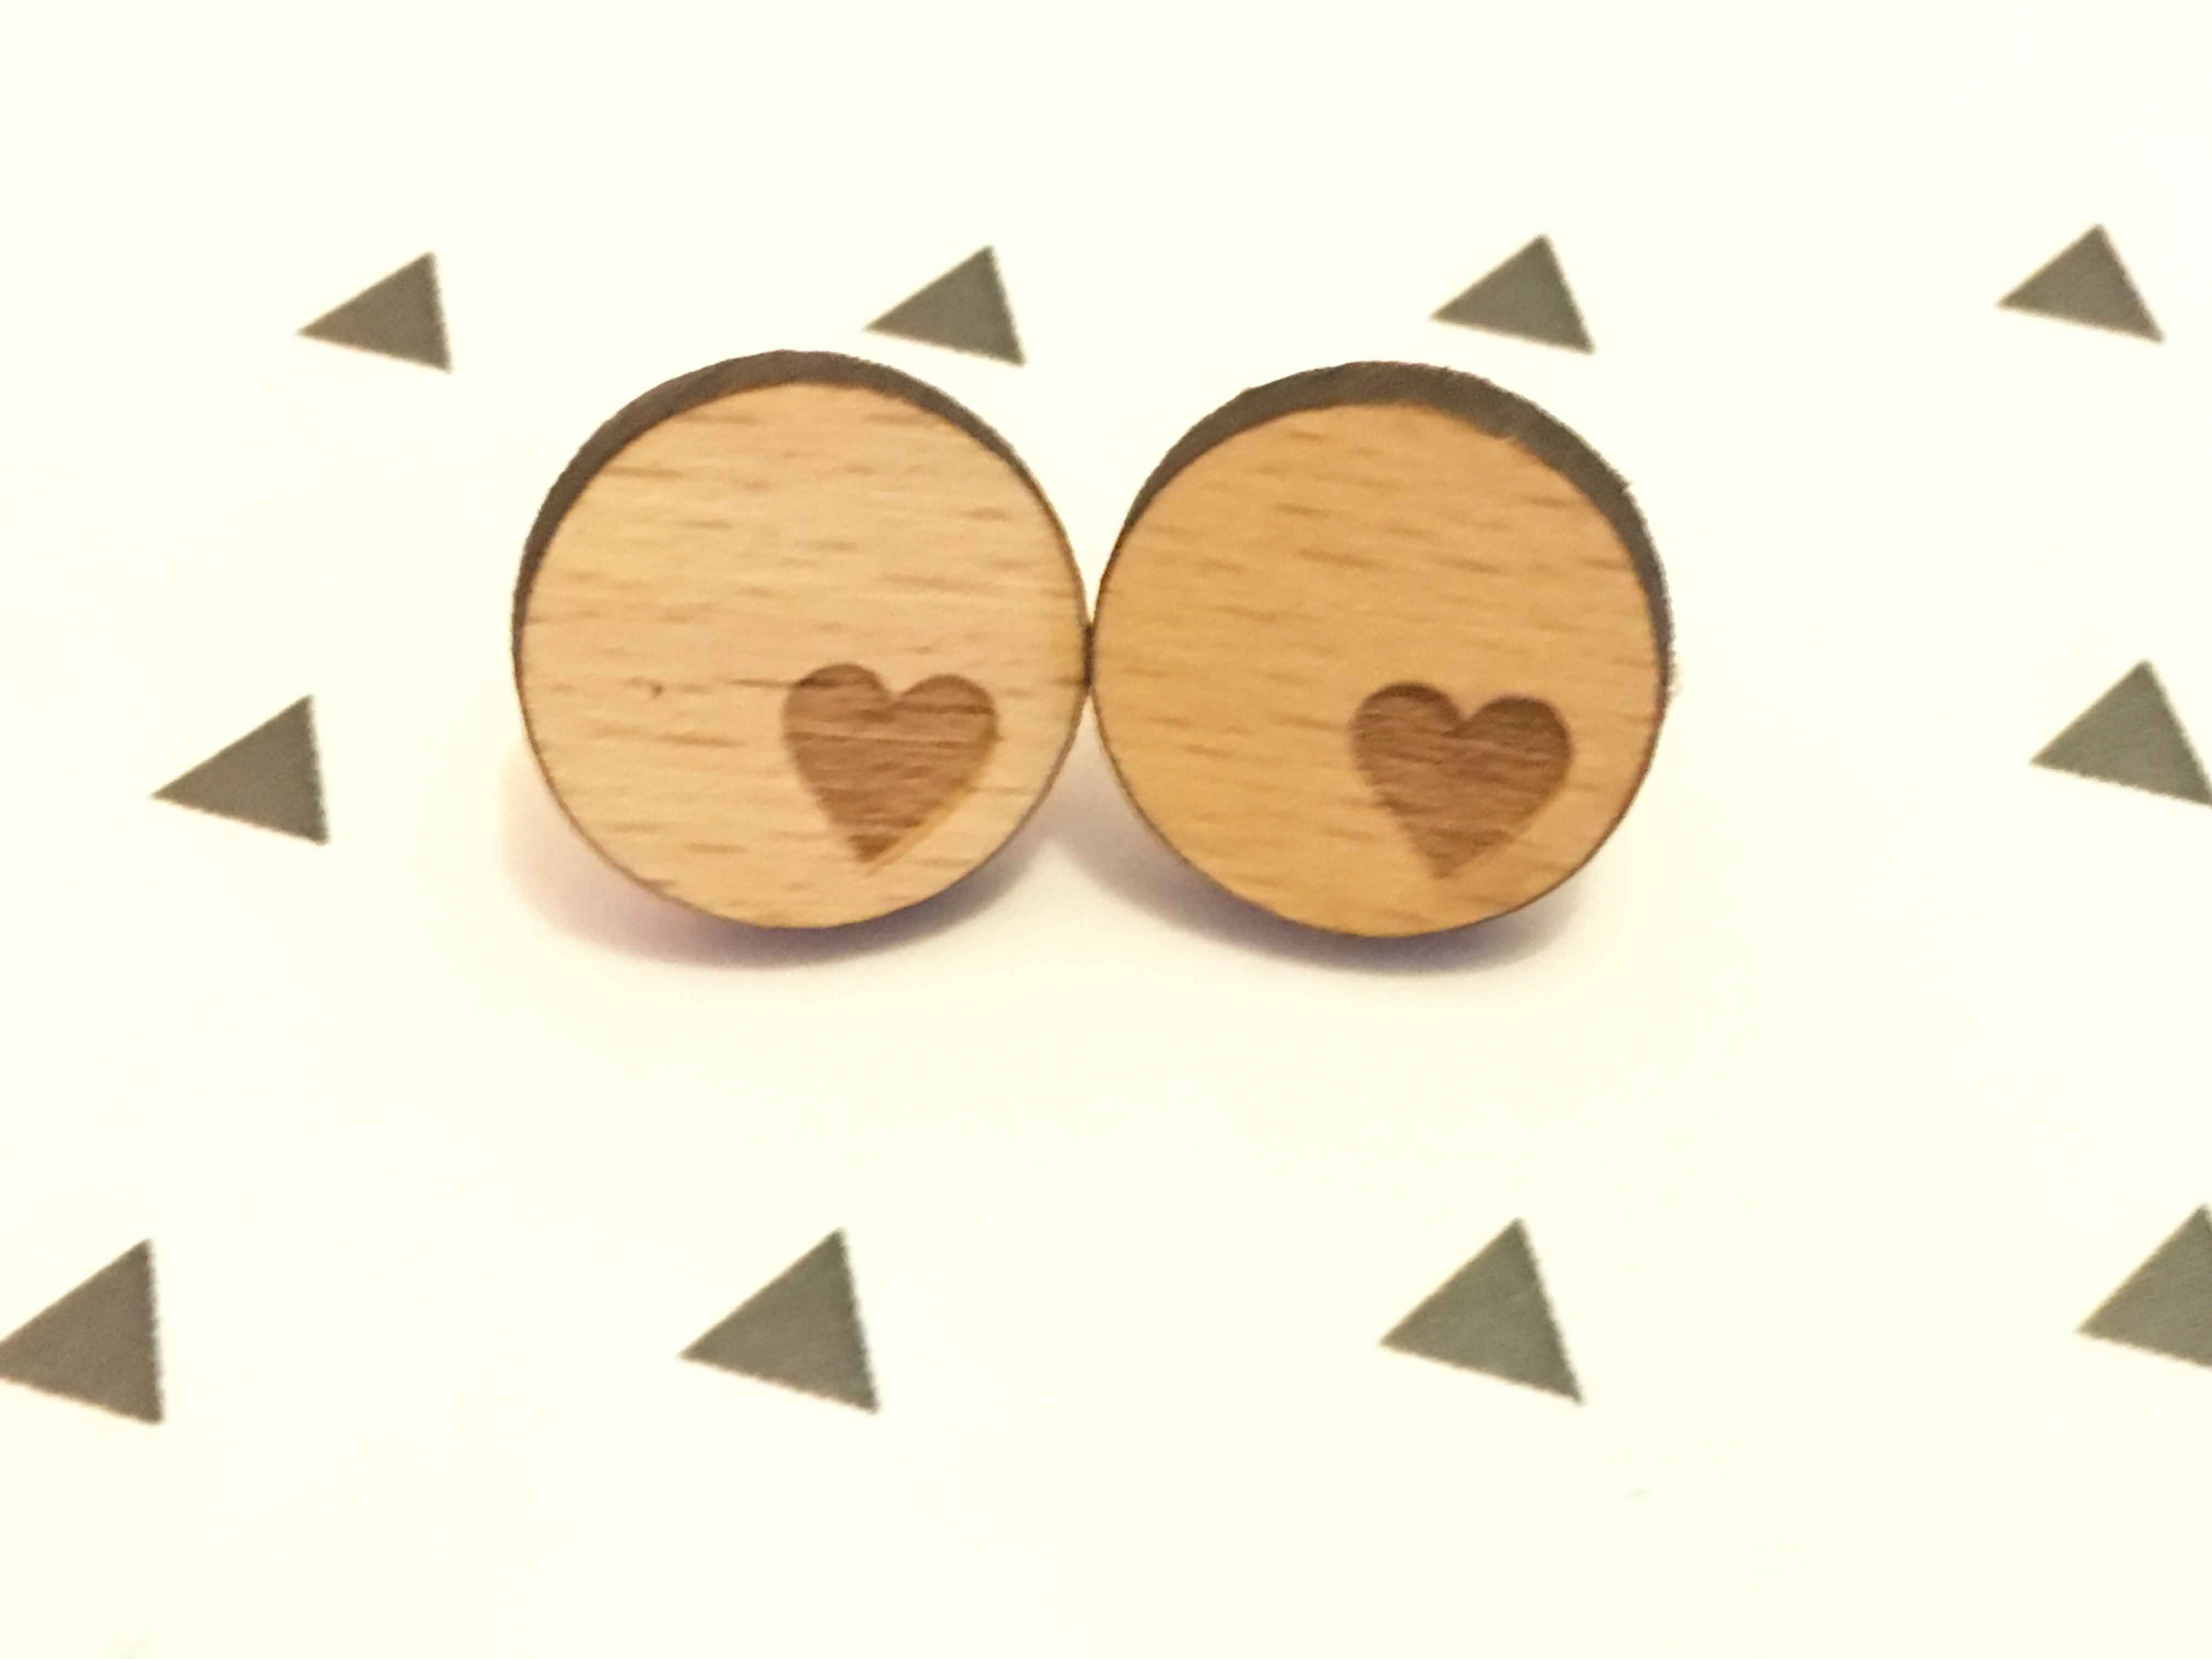 Laser Cut Supplies Heart Earrings Solid Wood Handmade And Round Shape Stud Love Wooden Earring X 1 Pair In From Jewelry Accessories On